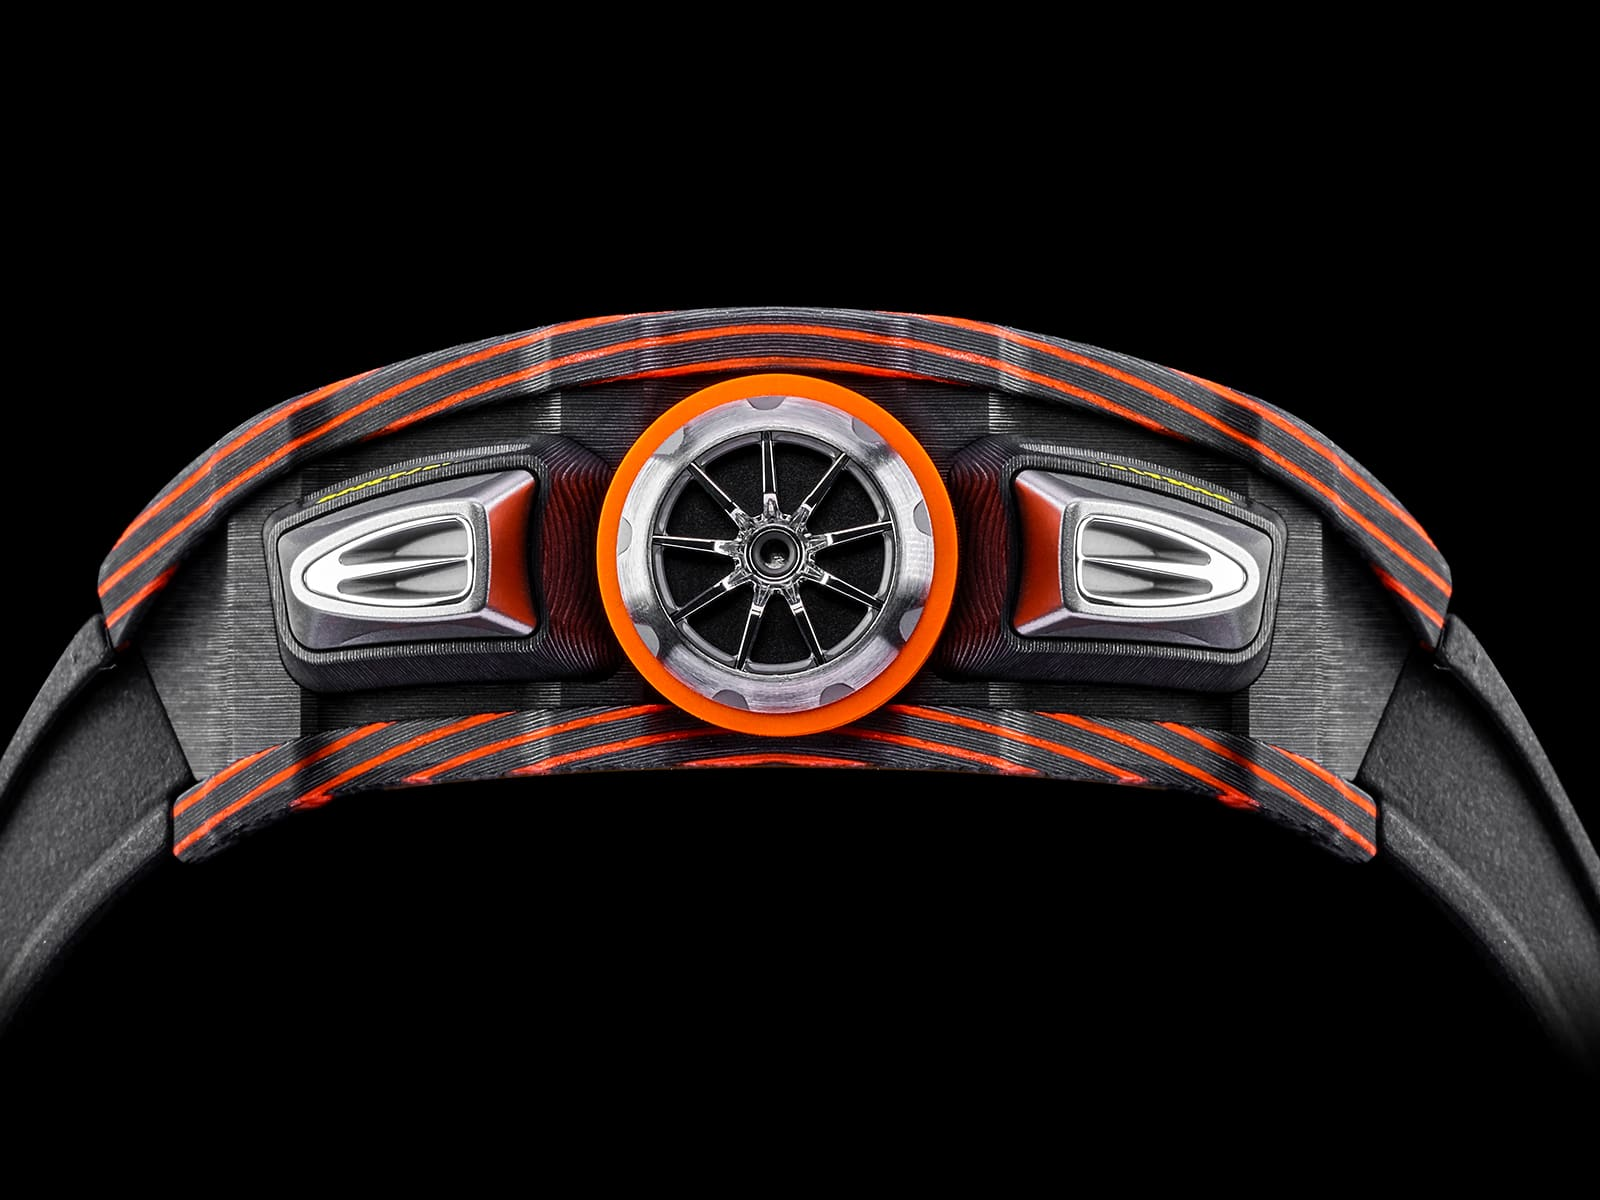 richard-mille-rm-11-03-mcLaren-automatic-flyback-chronograph-12-.jpg